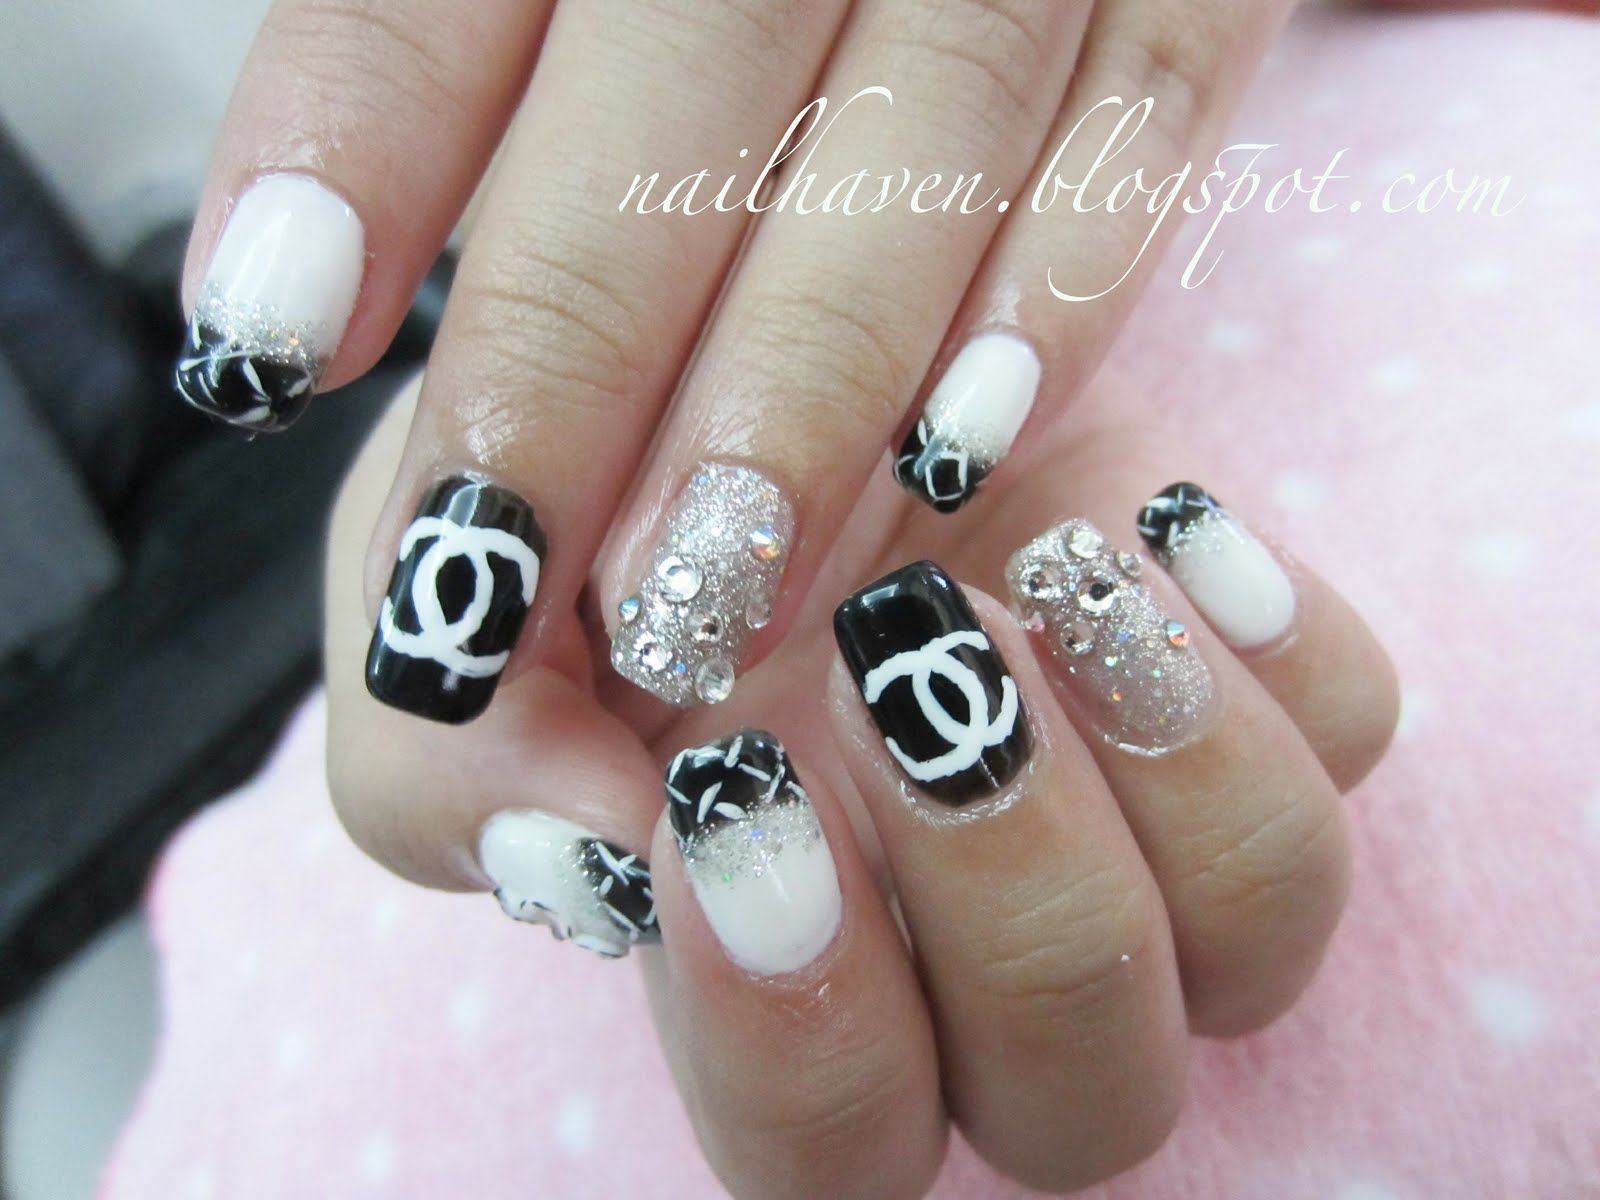 Chanel+Nail+Designs | Flowers with stripes twist.. | Nail ...